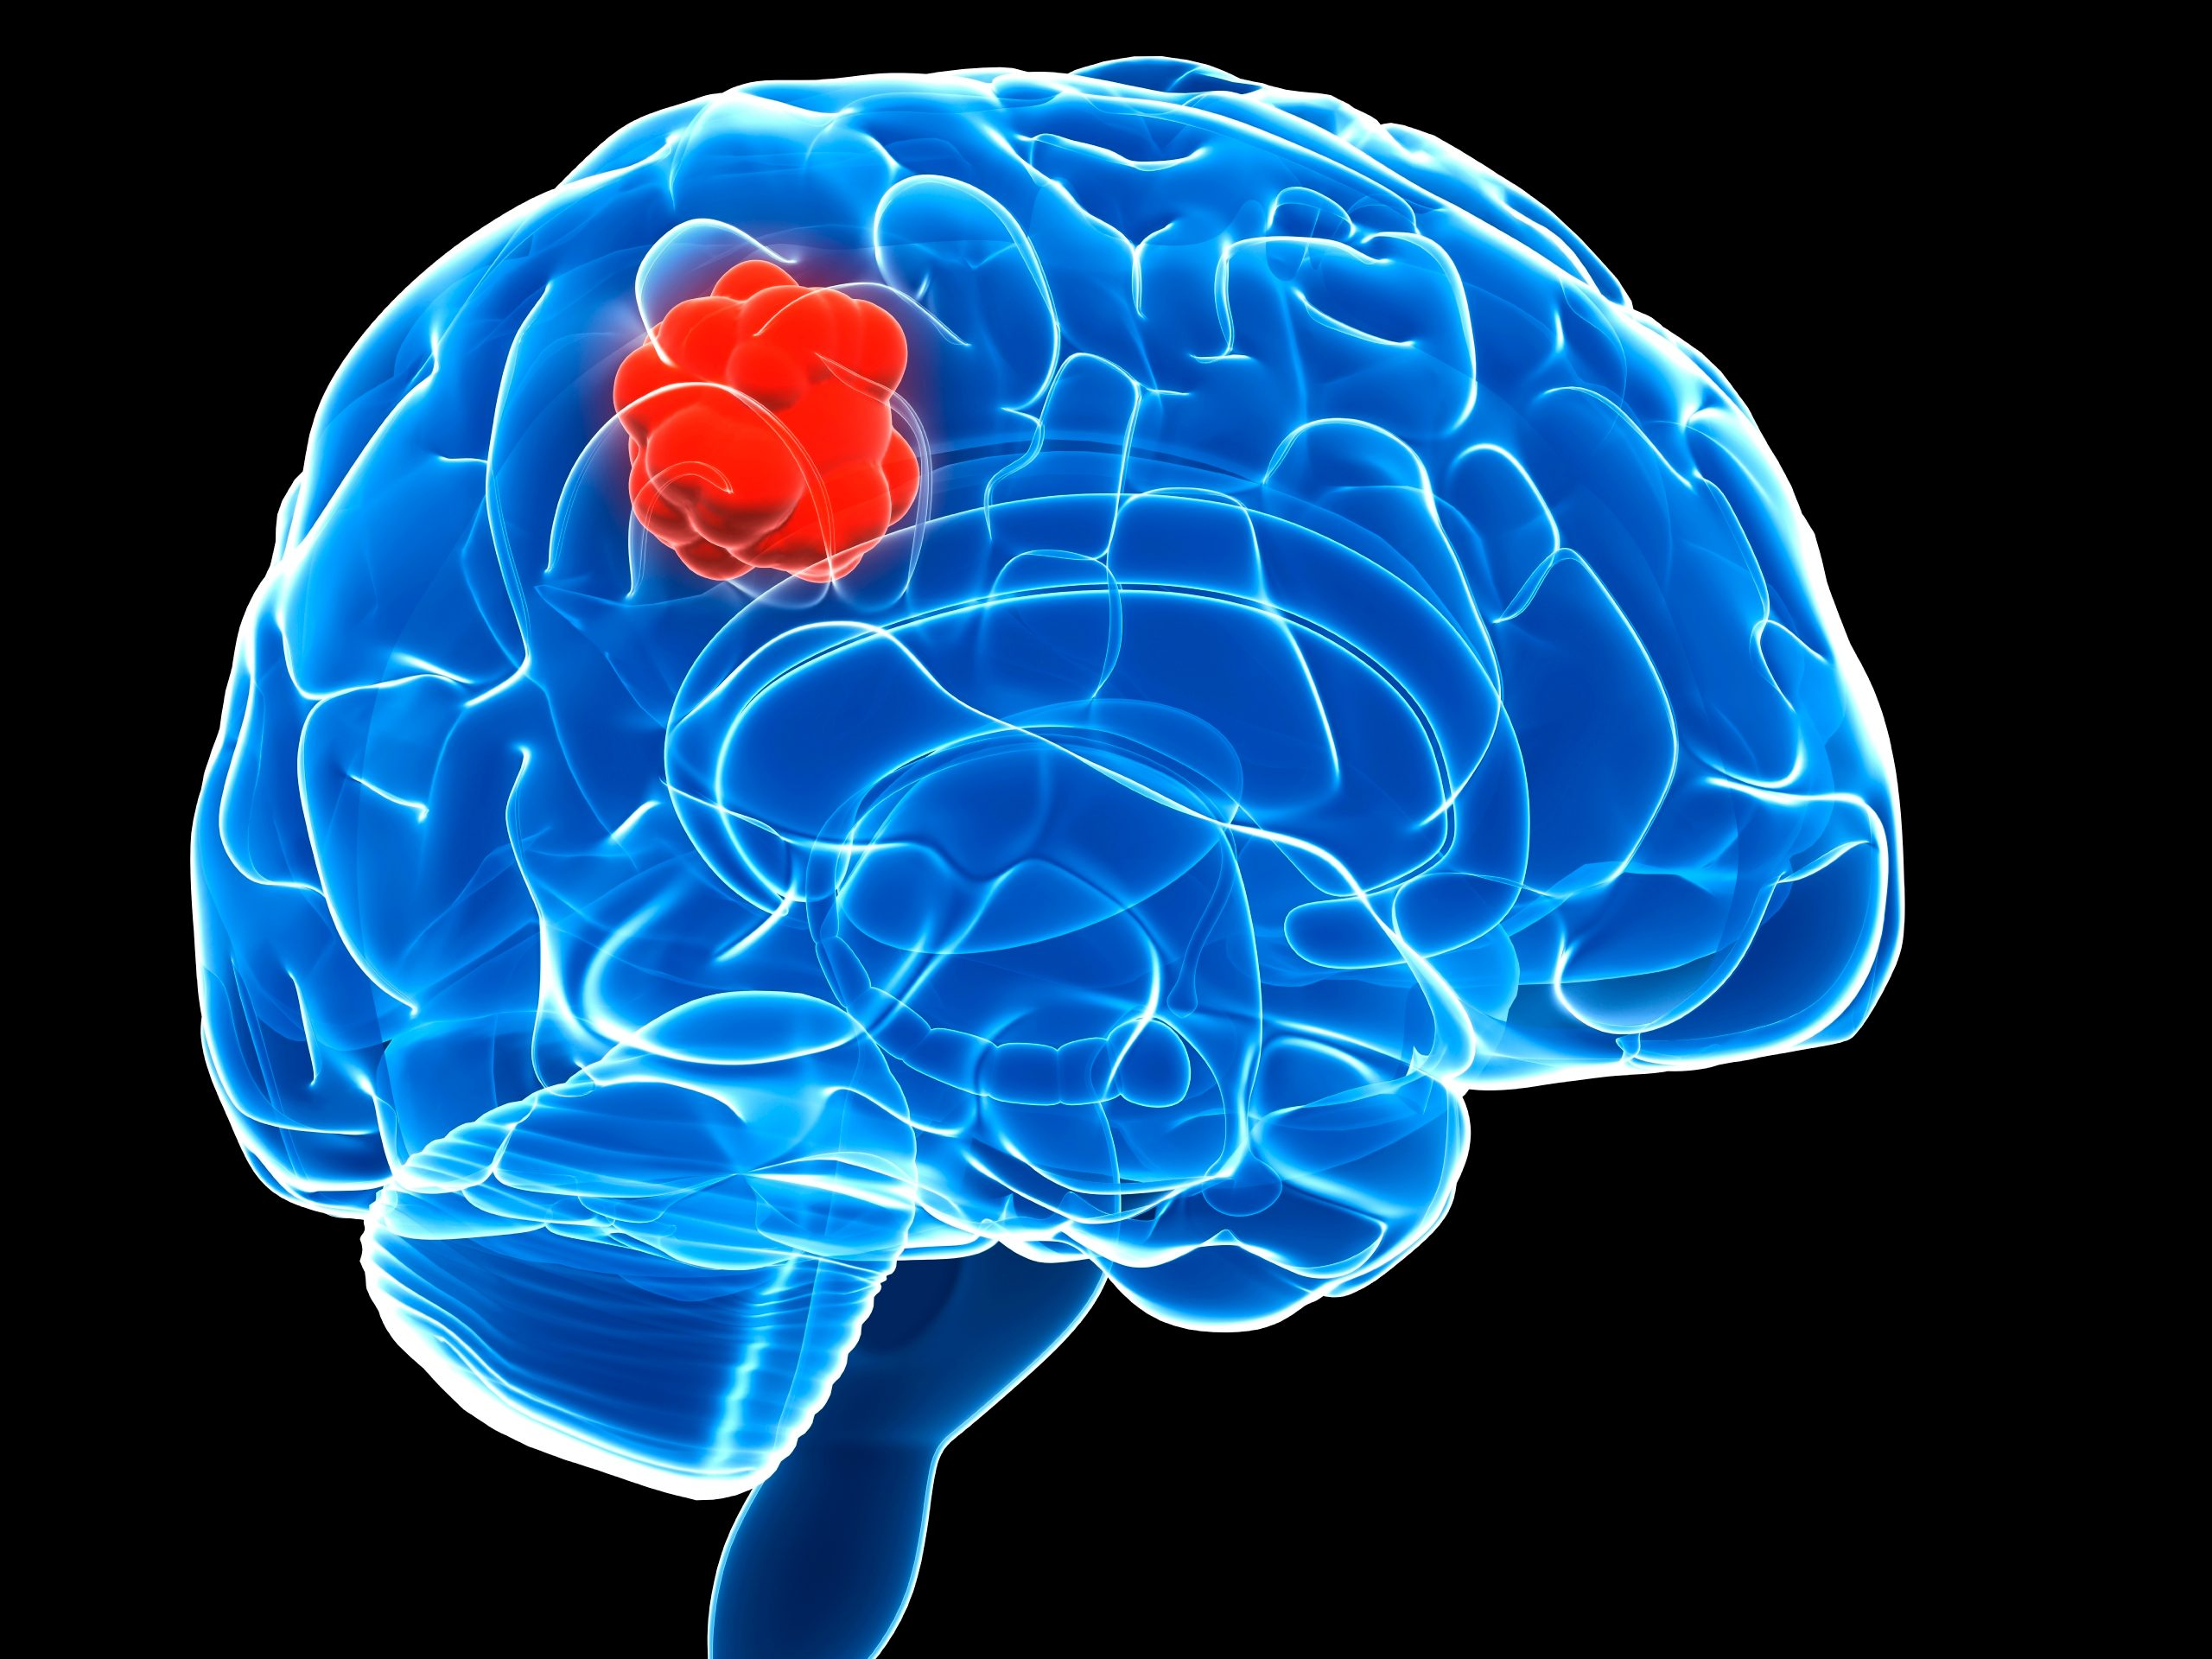 Glioblastoma remains the most common primary brain tumor after the age of 40 years Maximal safe surgery followed by adjuvant chemoradiotherapy has remained the